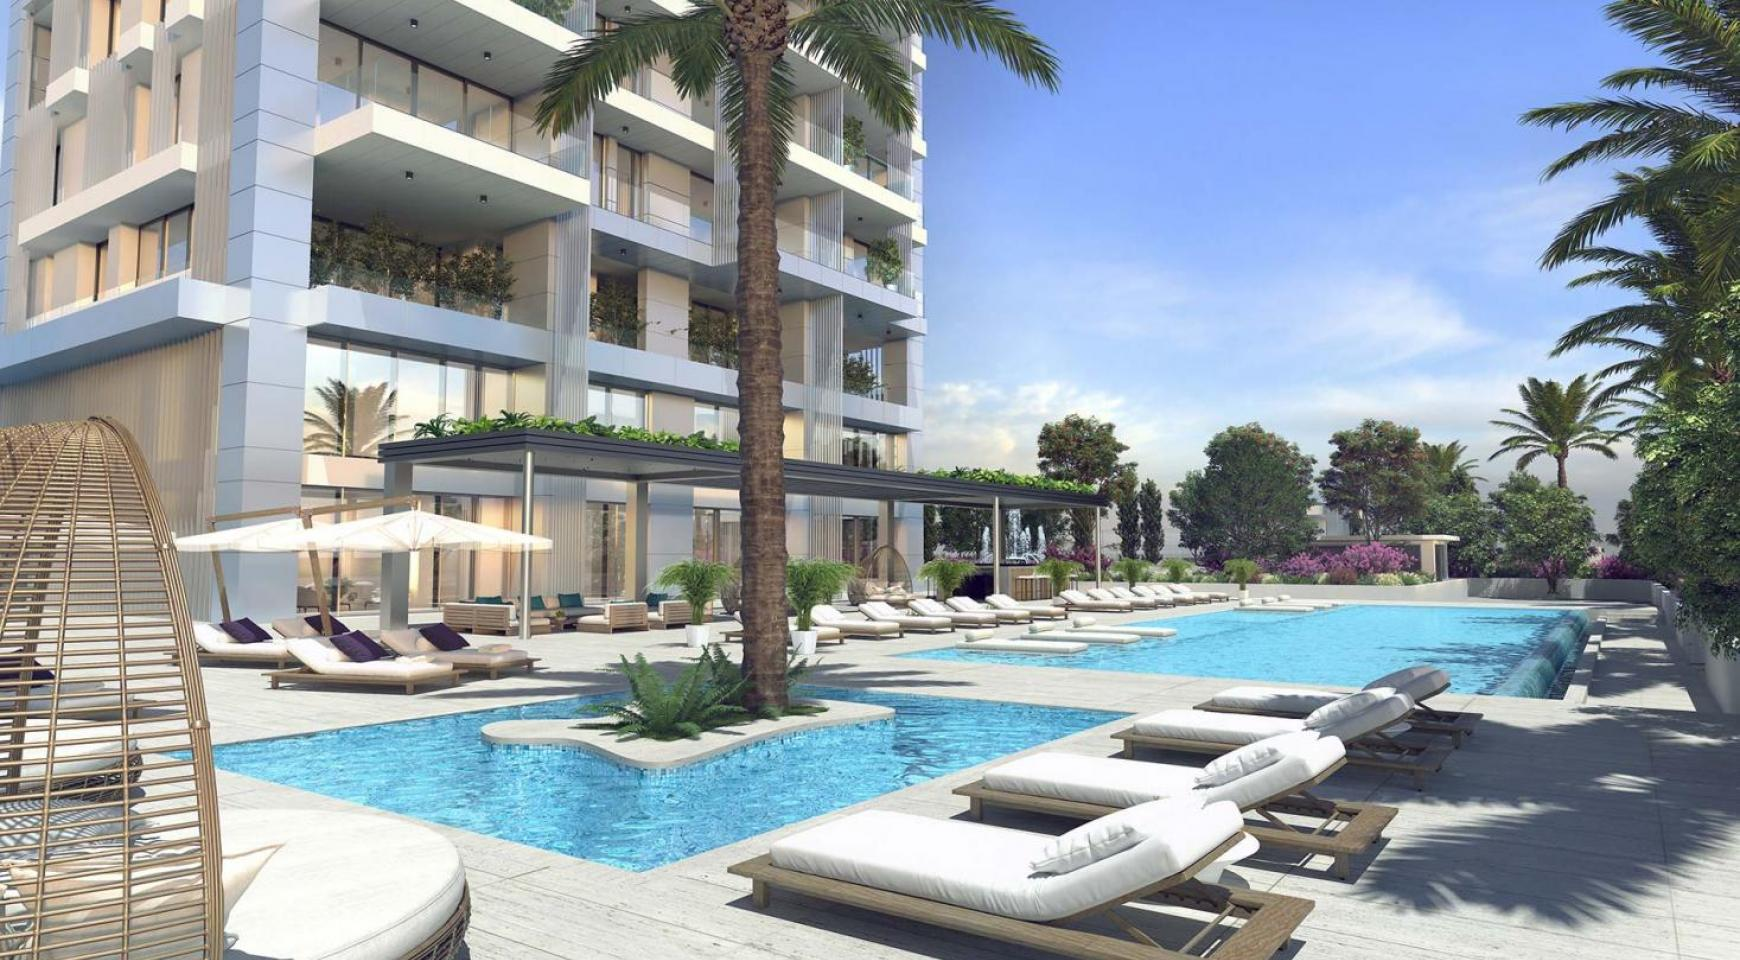 Contemporary 3 Bedroom Apartment with Sea Views in a Luxury Complex - 15